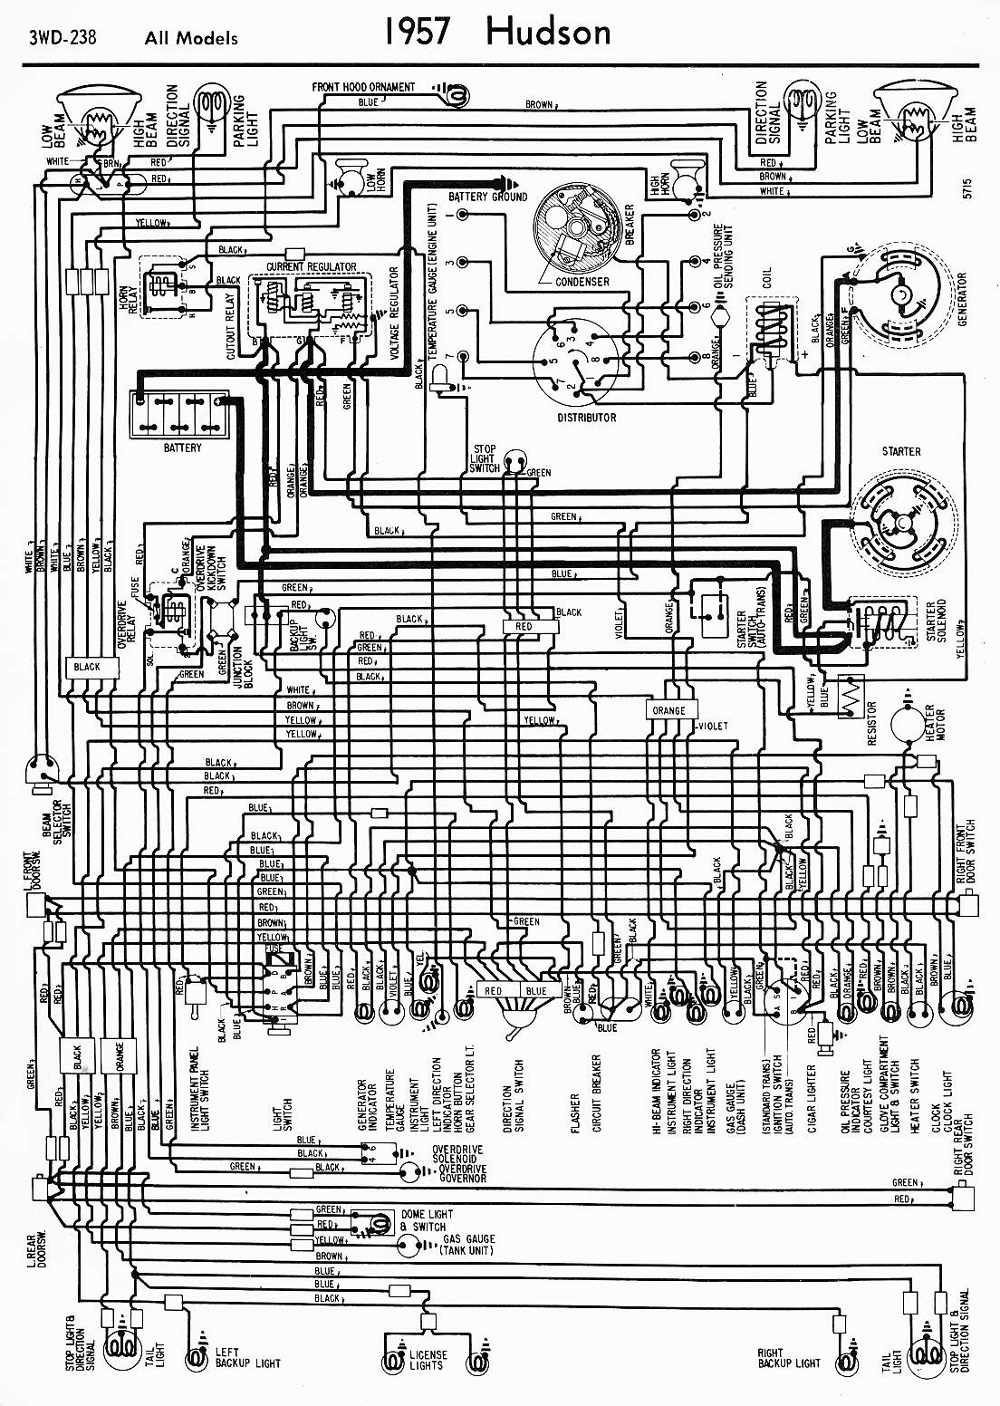 hudson car manuals wiring diagrams pdf fault codes rh automotive manuals net